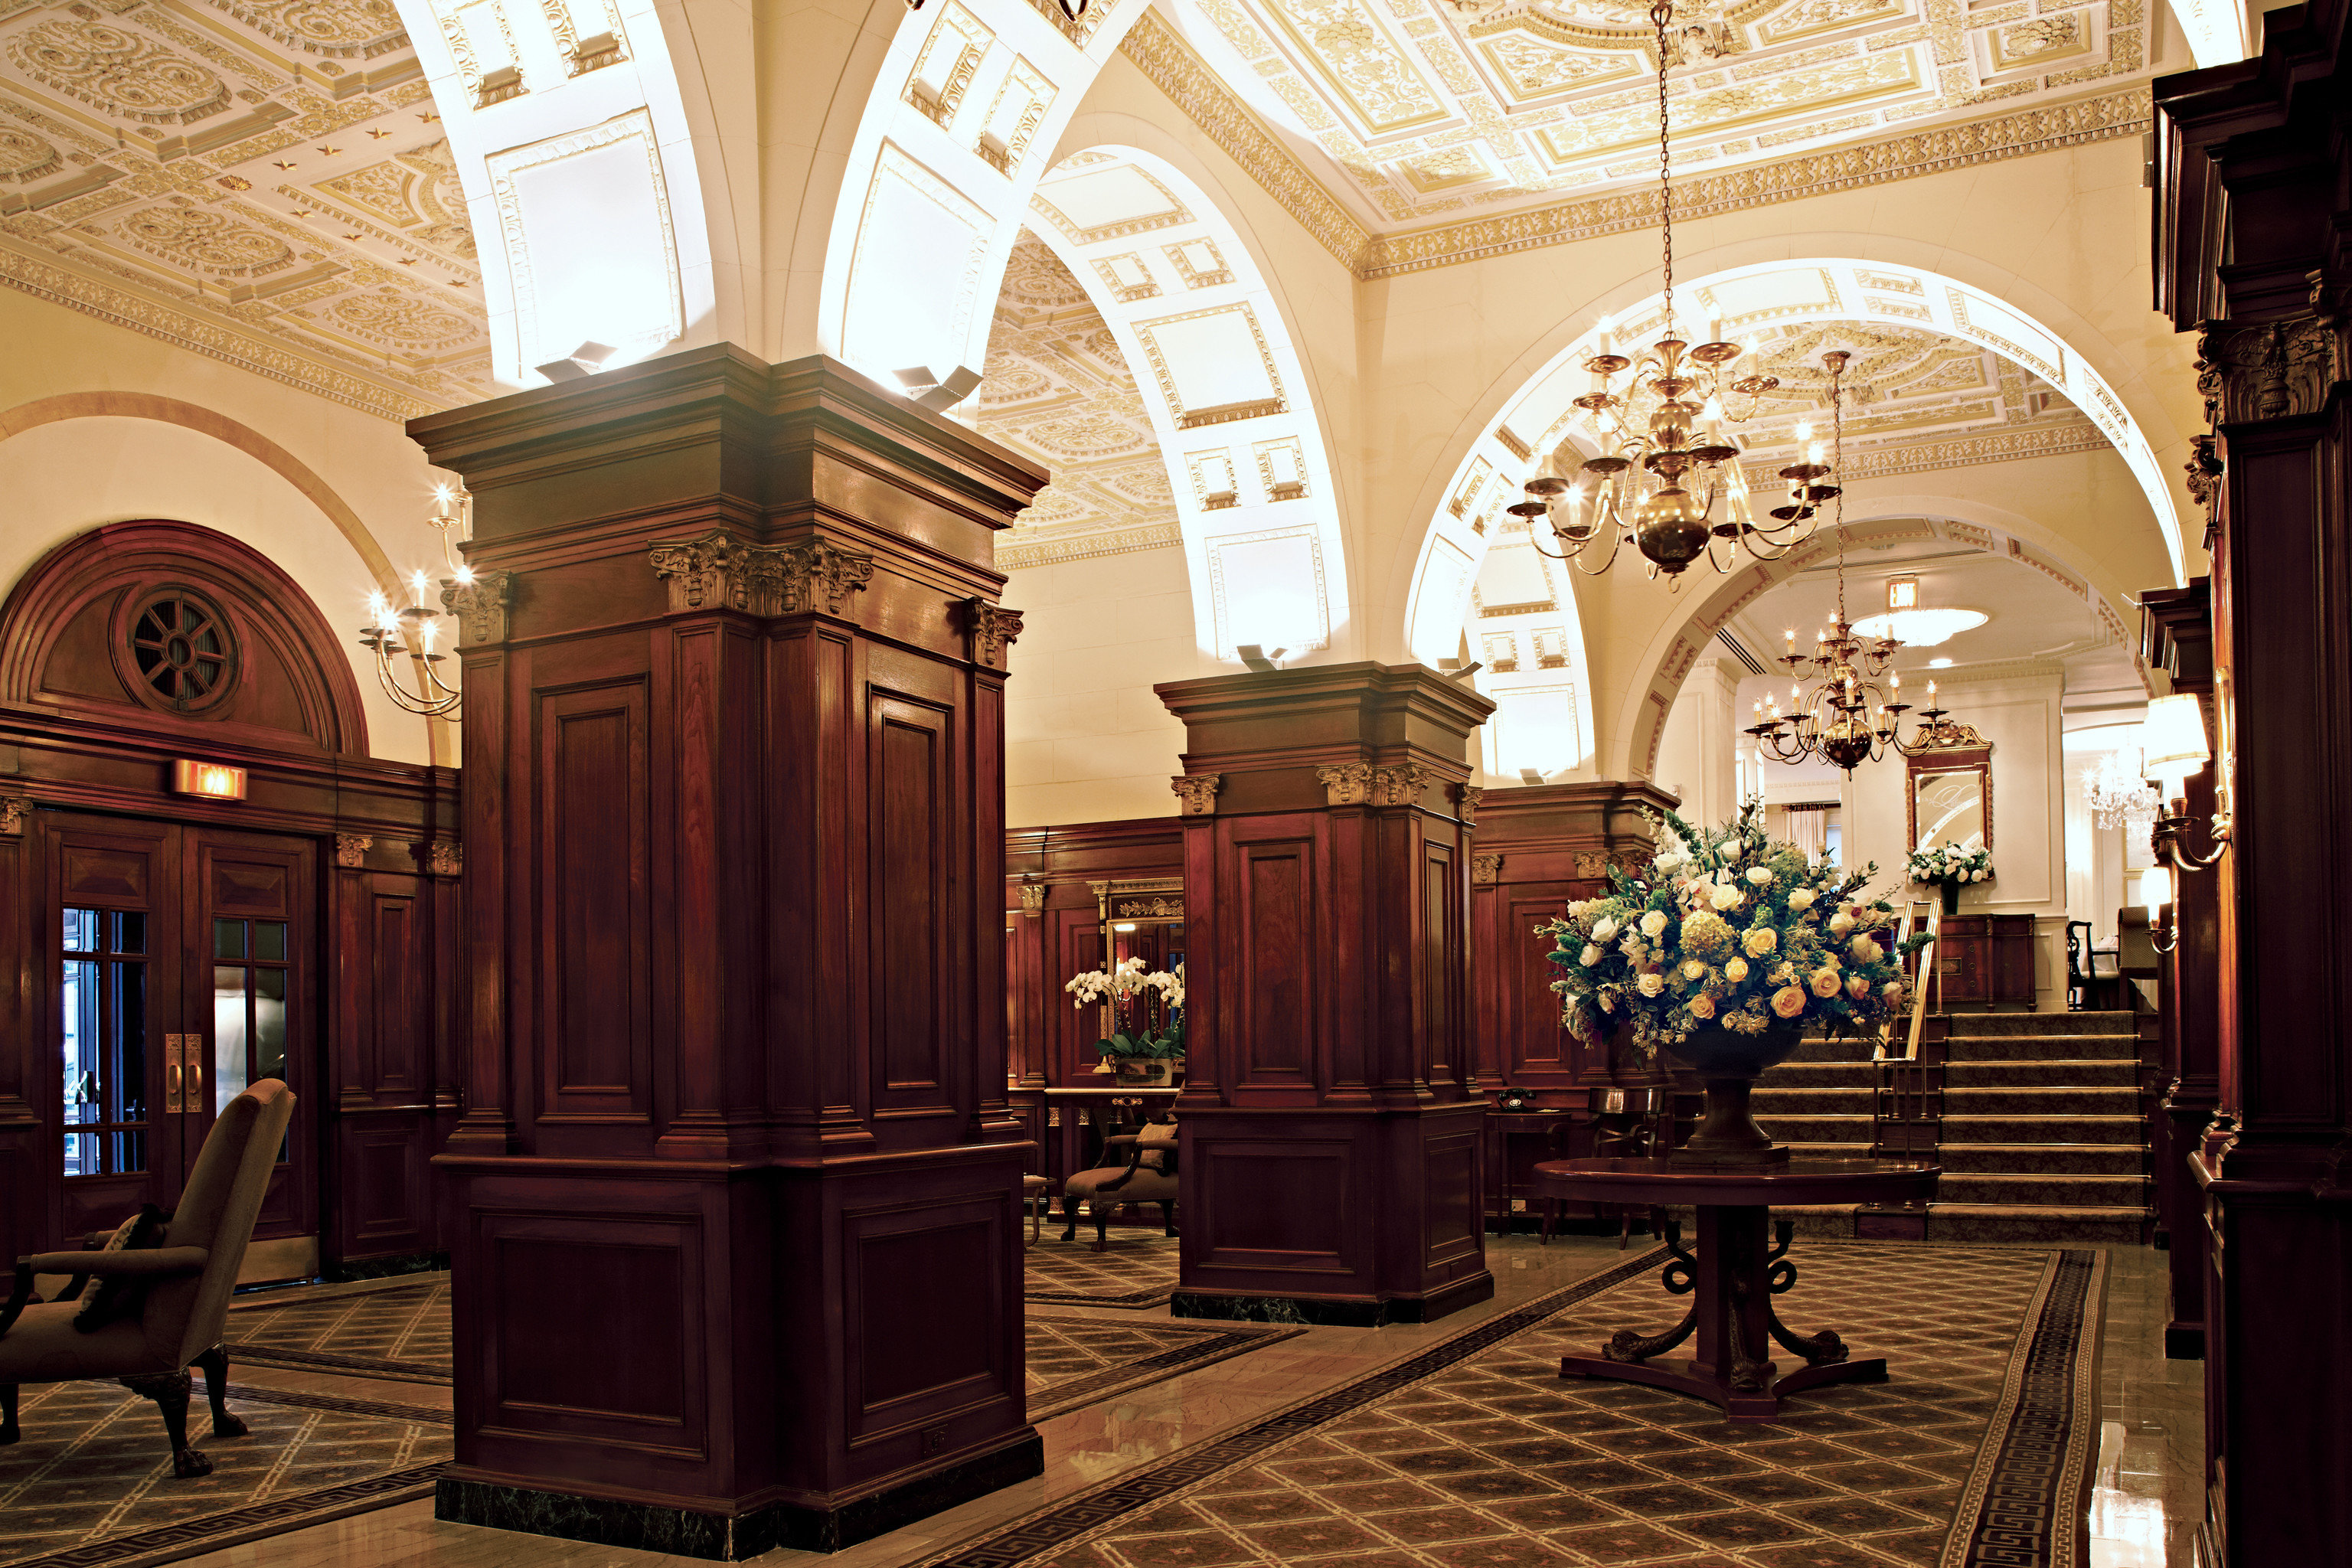 Lobby Lounge chapel Church place of worship synagogue hall ballroom colonnade